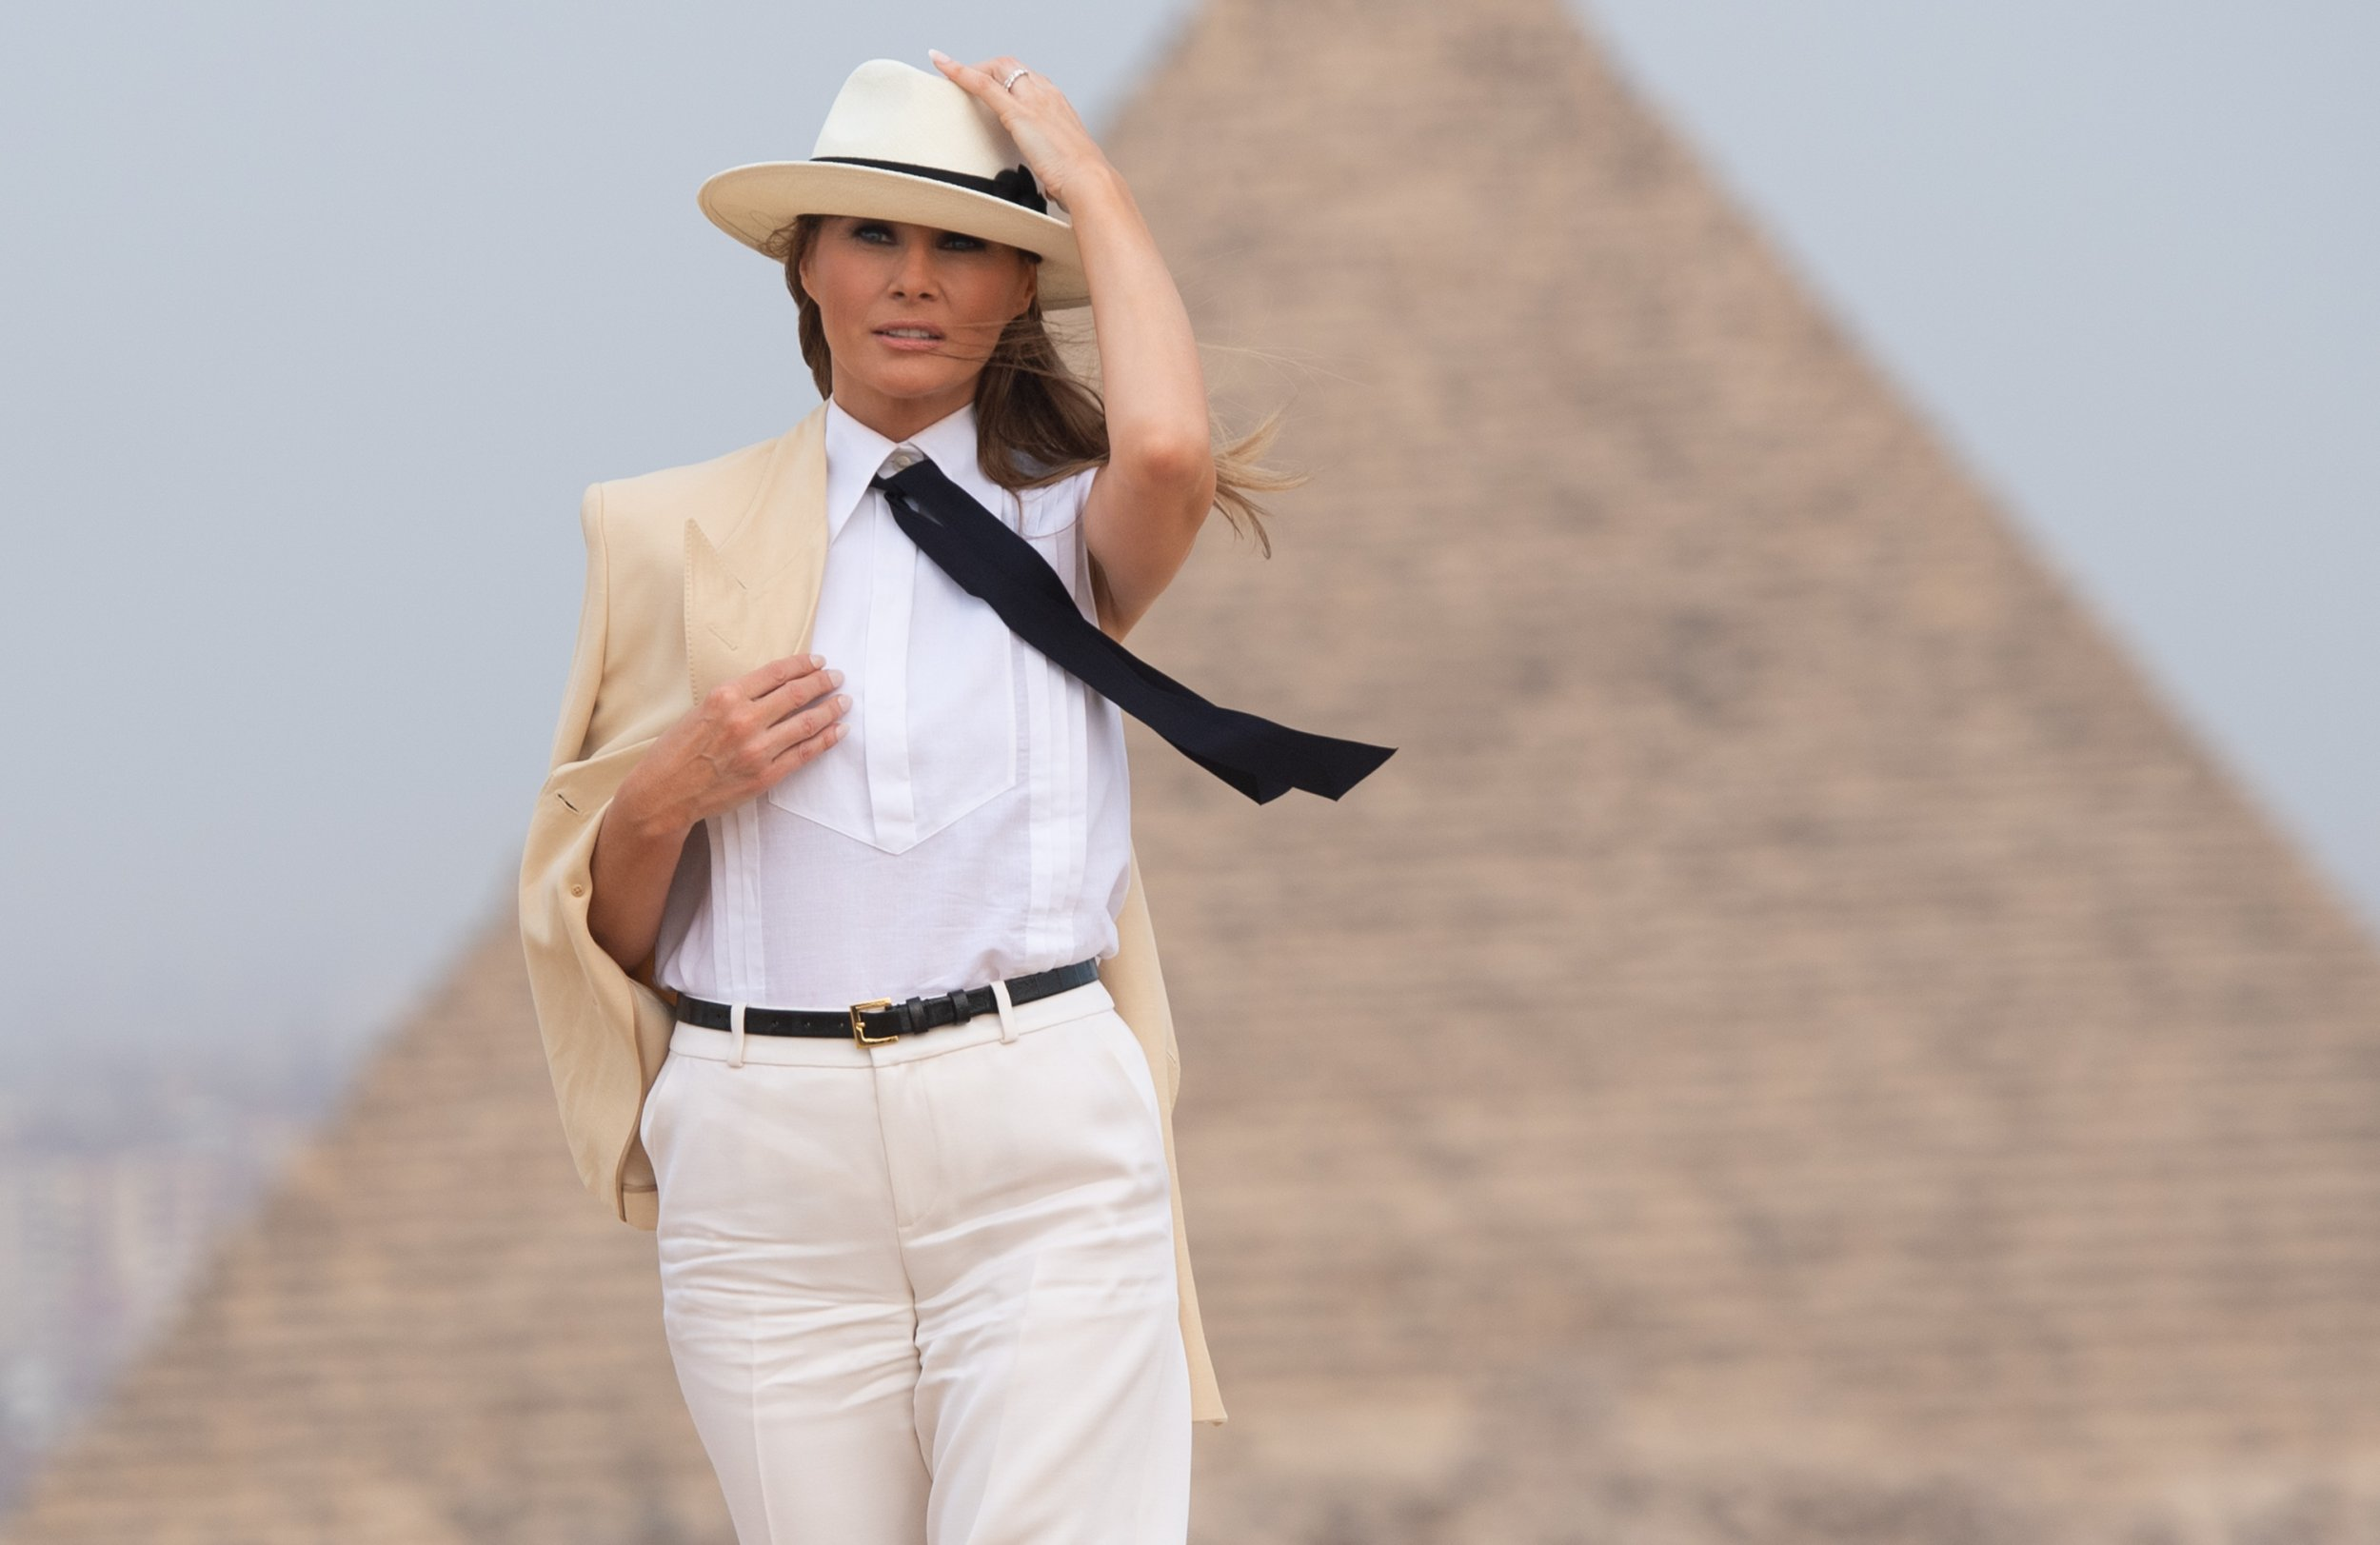 """Melania said she has """"much more important things to think about"""" than Donald Trump's alleged affairs"""